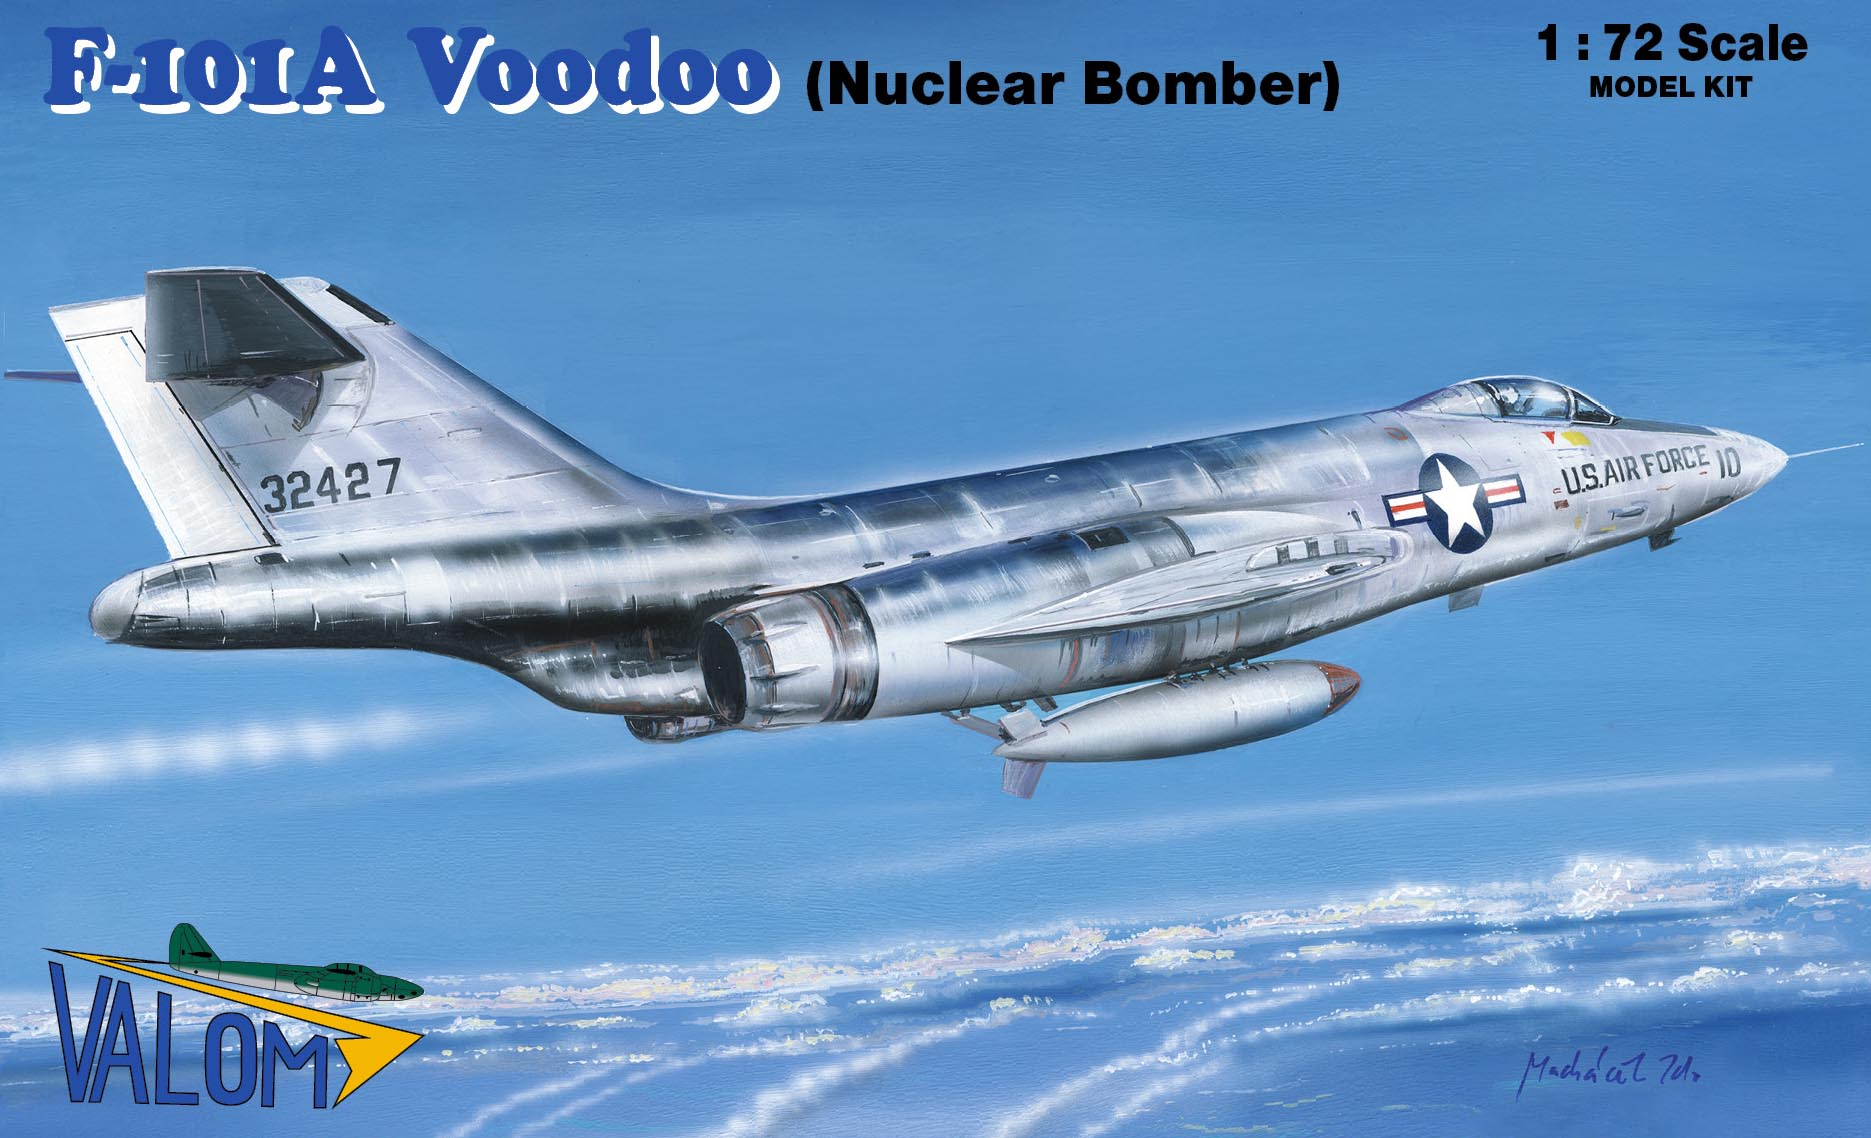 Valom F-101A Voodoo (Nuclear bomber)